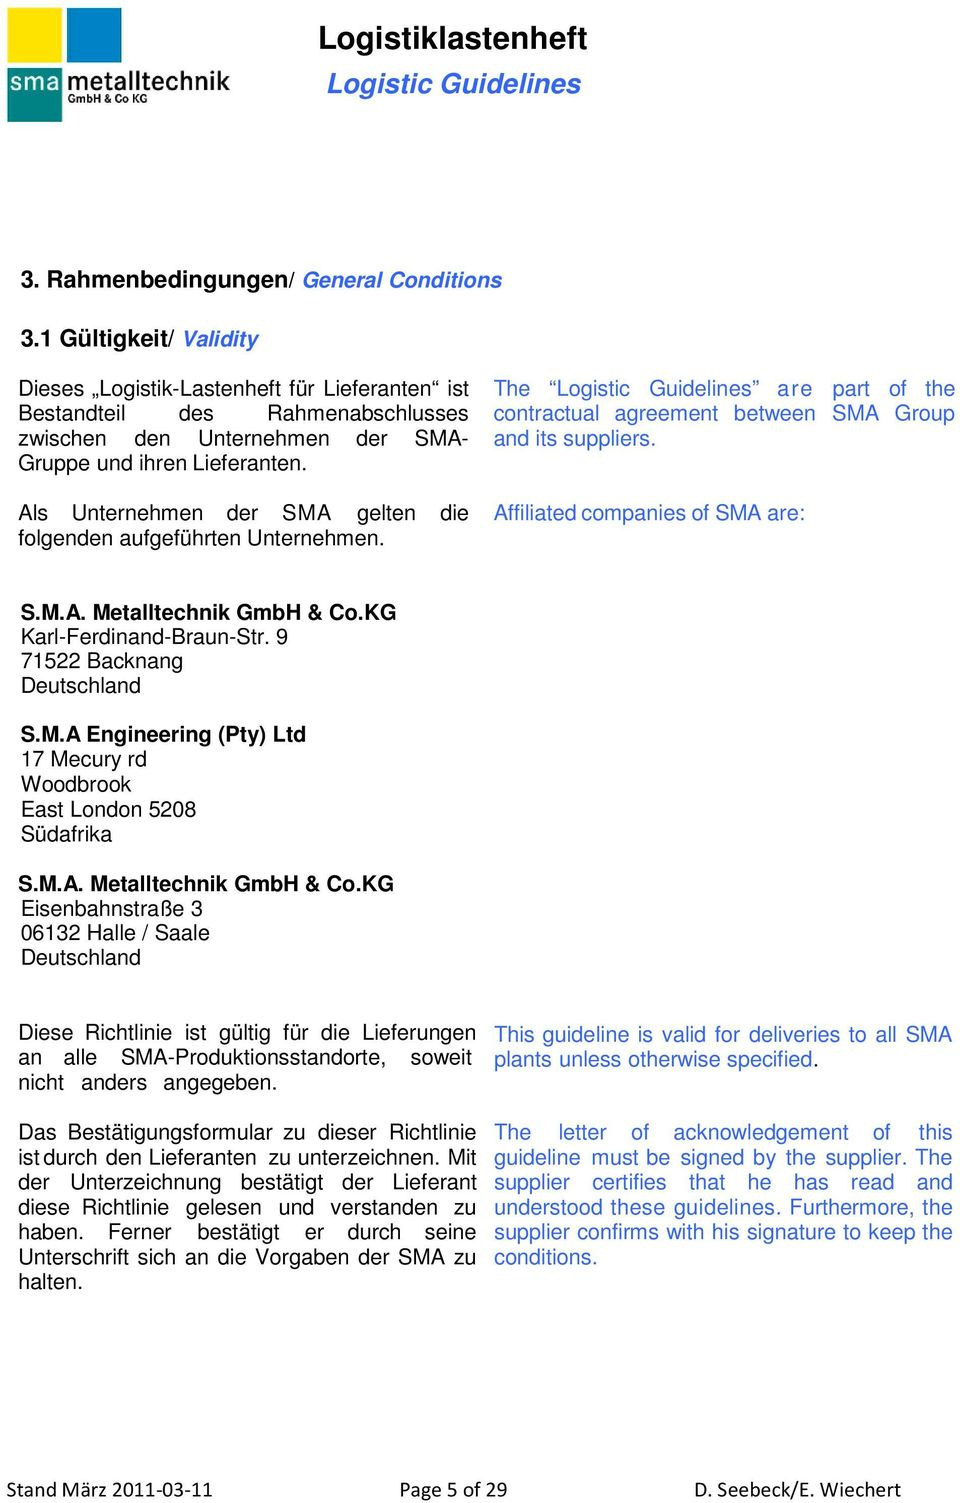 Als Unternehmen der SMA gelten die folgenden aufgeführten Unternehmen. The are part of the contractual agreement between SMA Group and its suppliers. Affiliated companies of SMA are: S.M.A. Metalltechnik GmbH & Co.